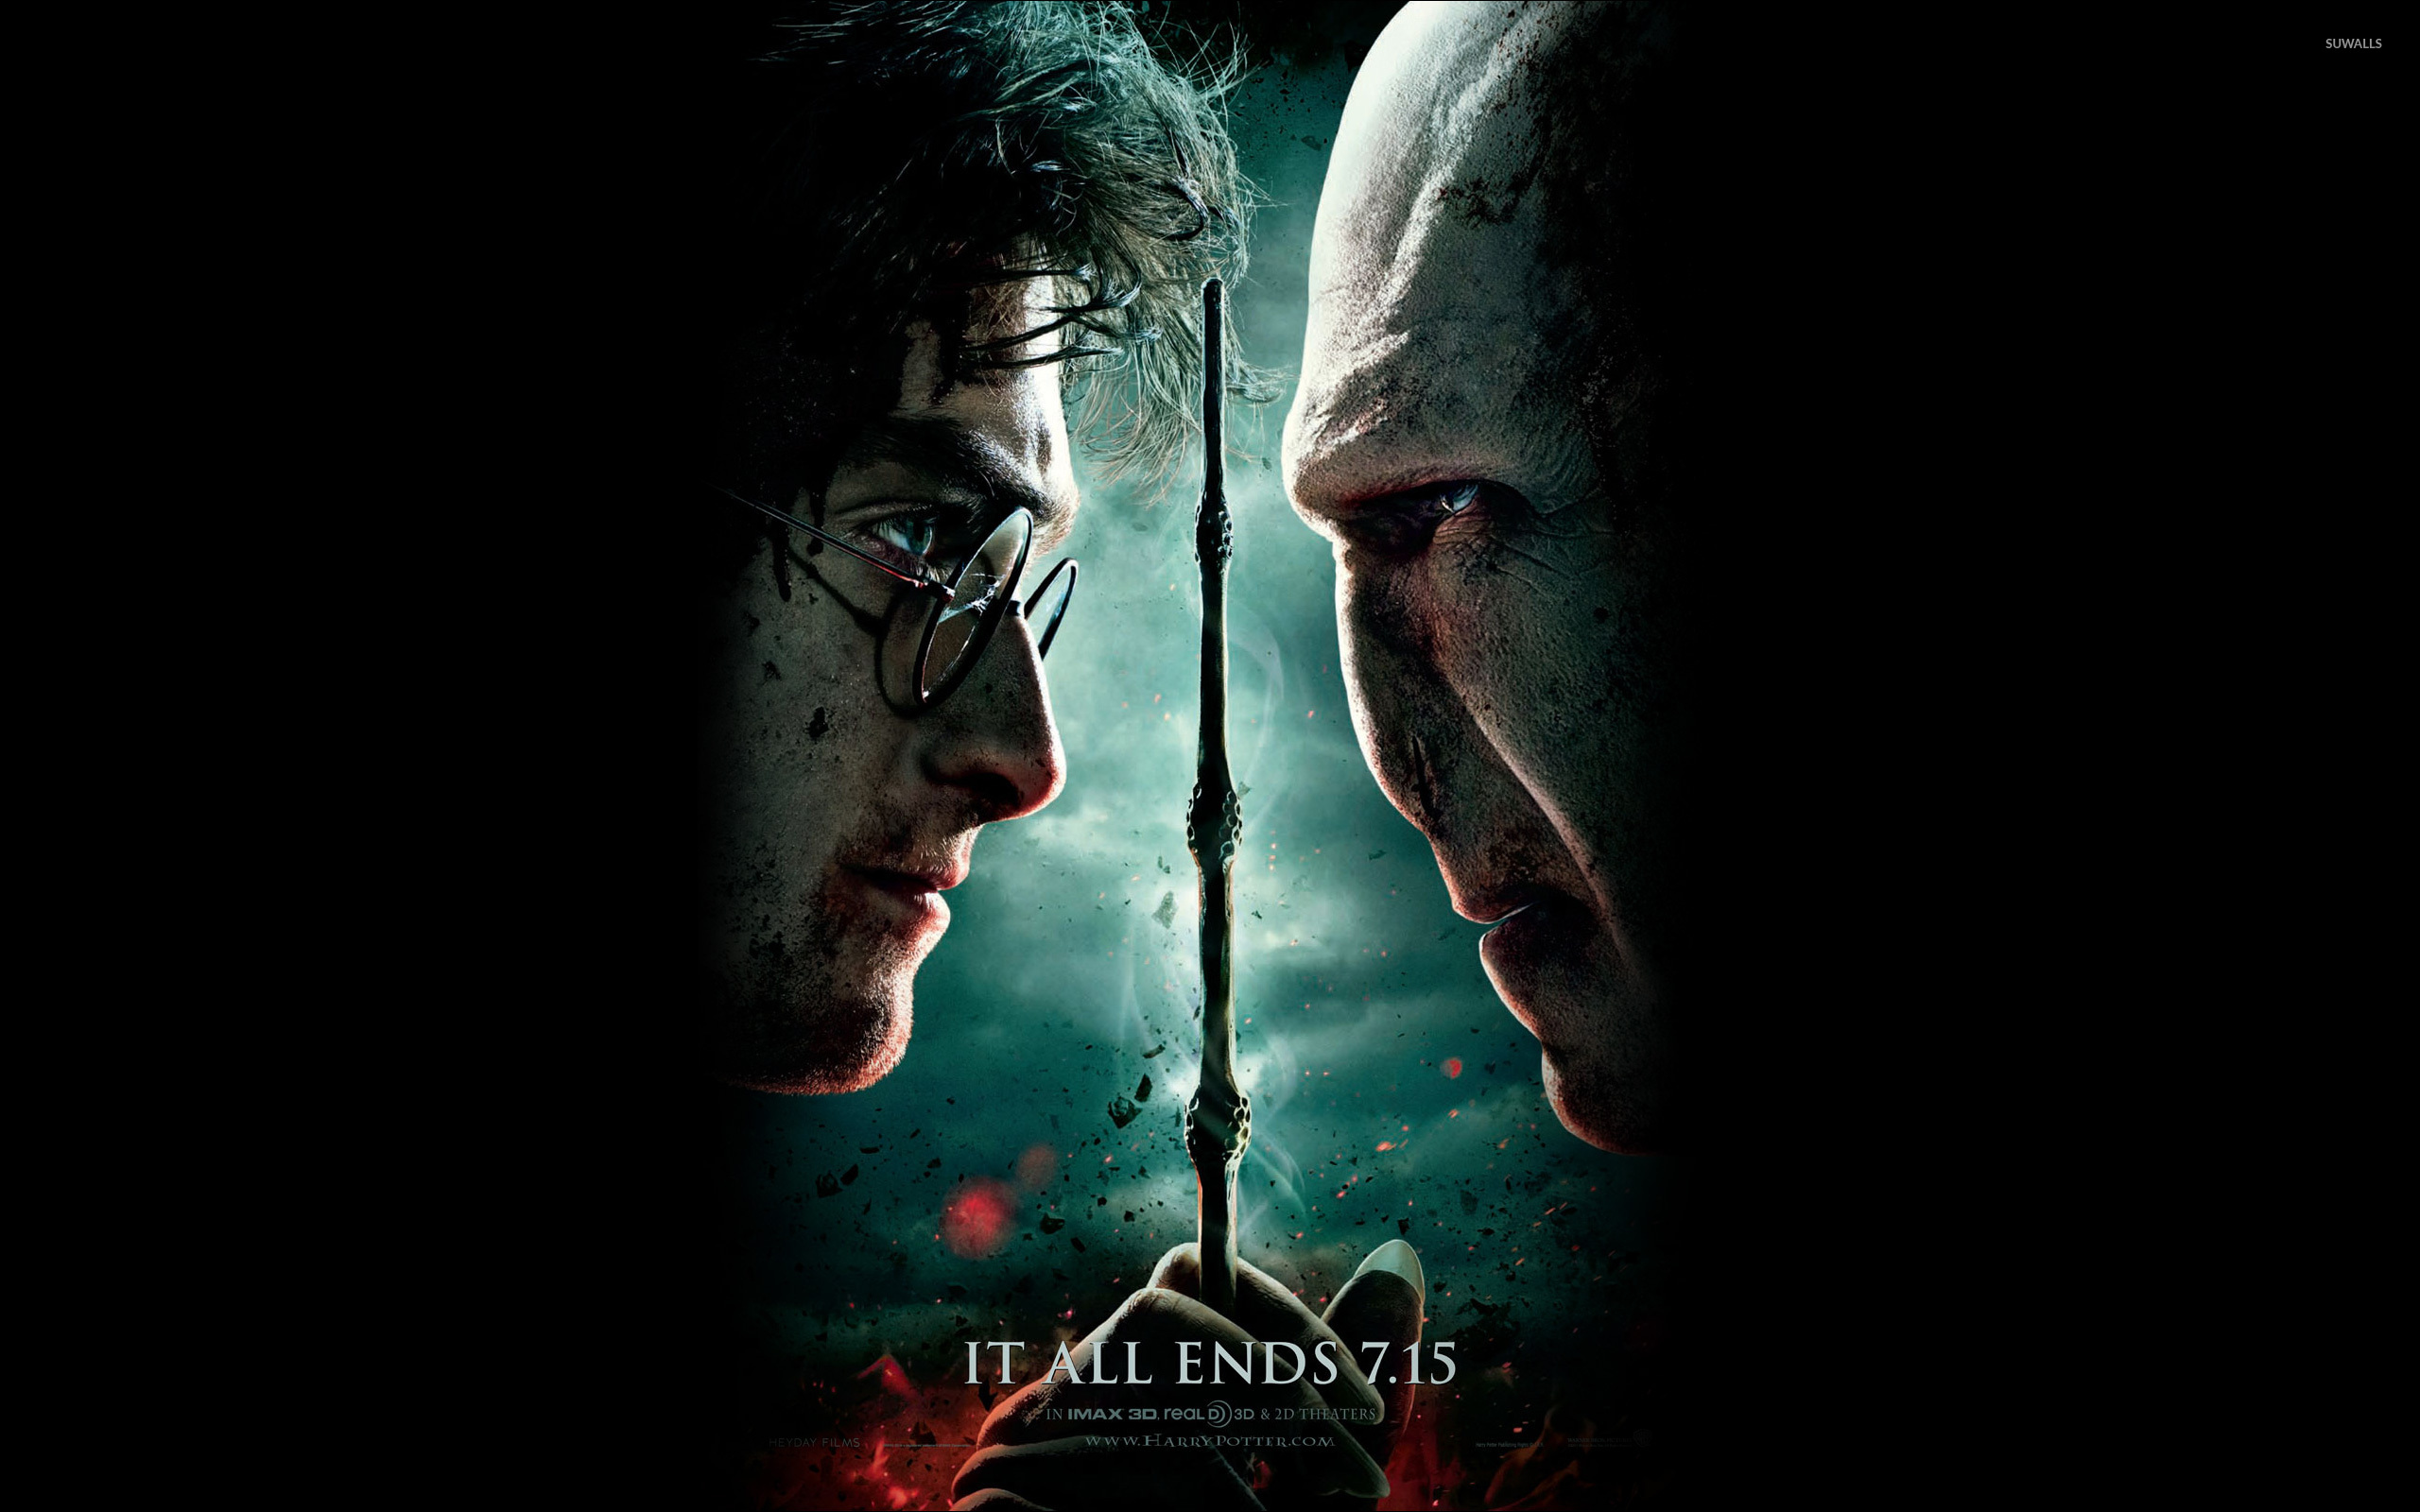 Simple Wallpaper Harry Potter Ultra Hd - harry-potter-and-the-deathly-hallows-part-2-4974-2560x1600  Picture_676582.jpg